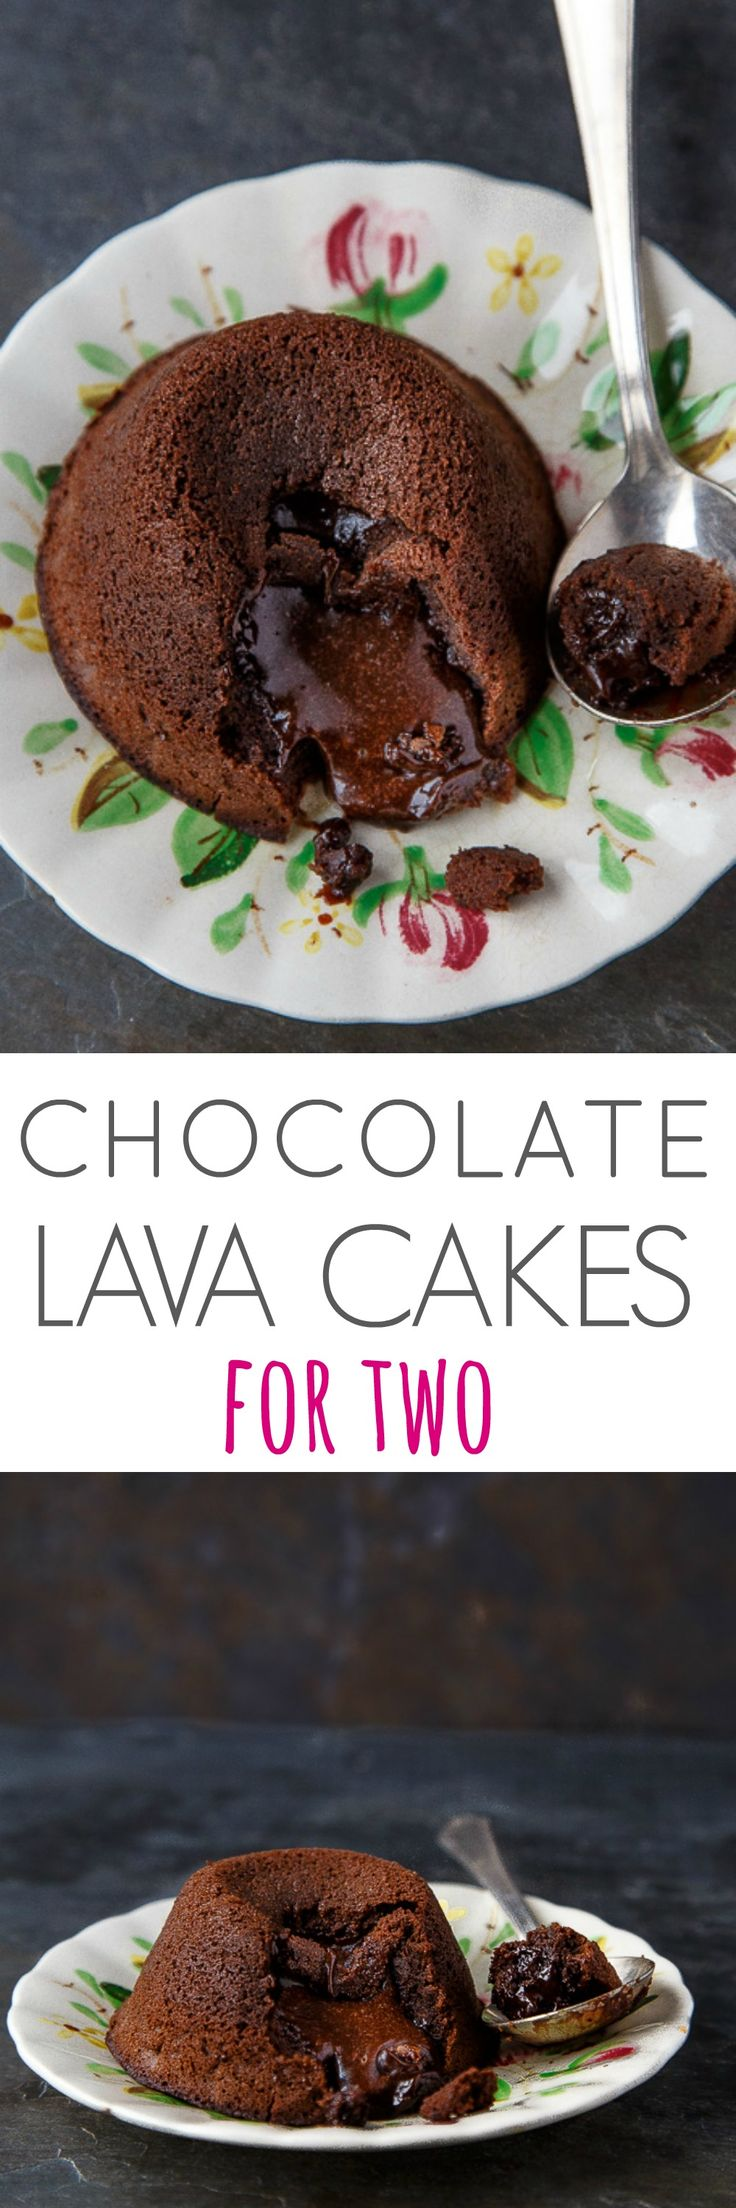 VIDEO: exactly how to make two molten chocolate lava cakes. The only chocolate dessert for two that you need! Romantic date night dessert @DessertForTwo